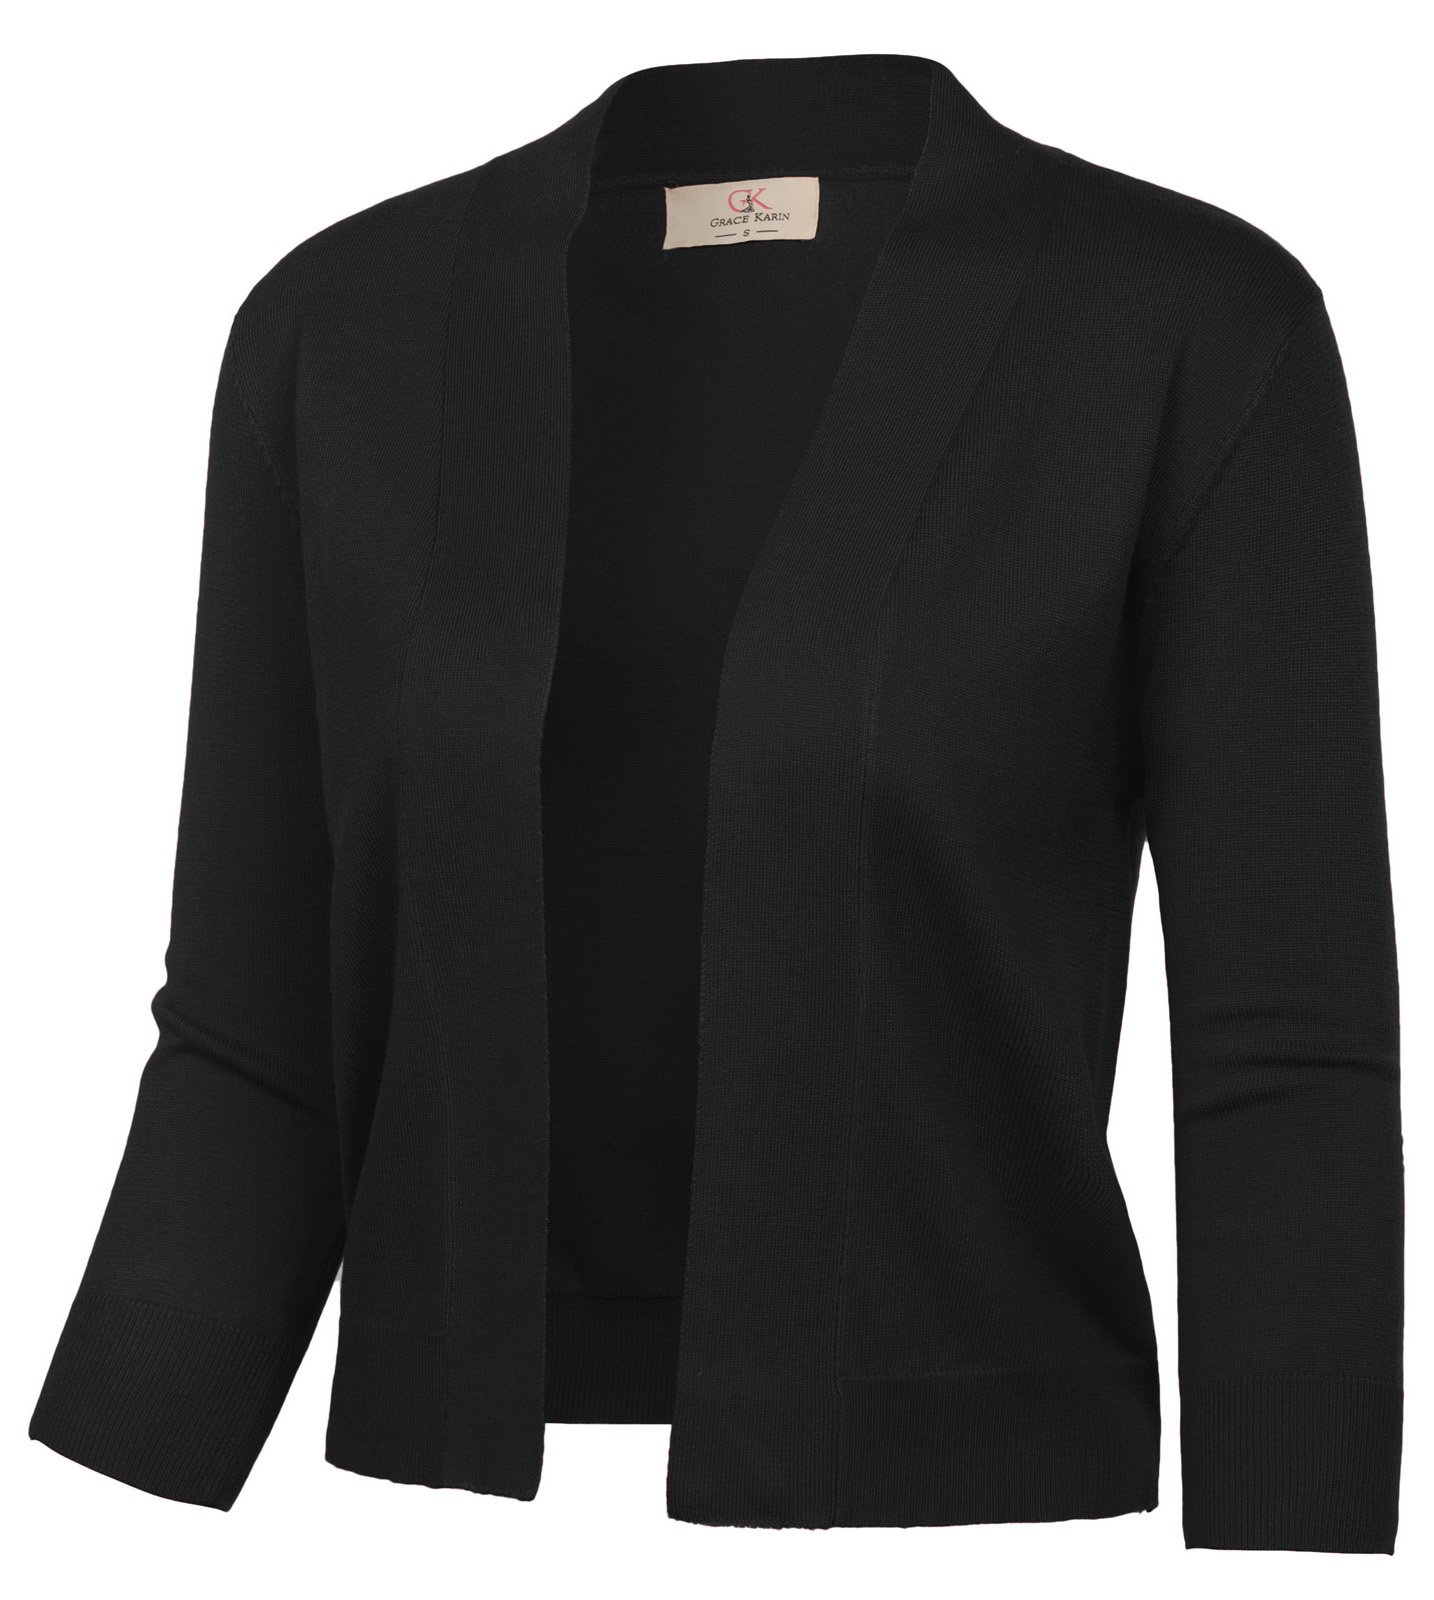 GRACE KARIN Office Cropped Knit Cardigan Jacket for Dress (XXL, Black CL2003)